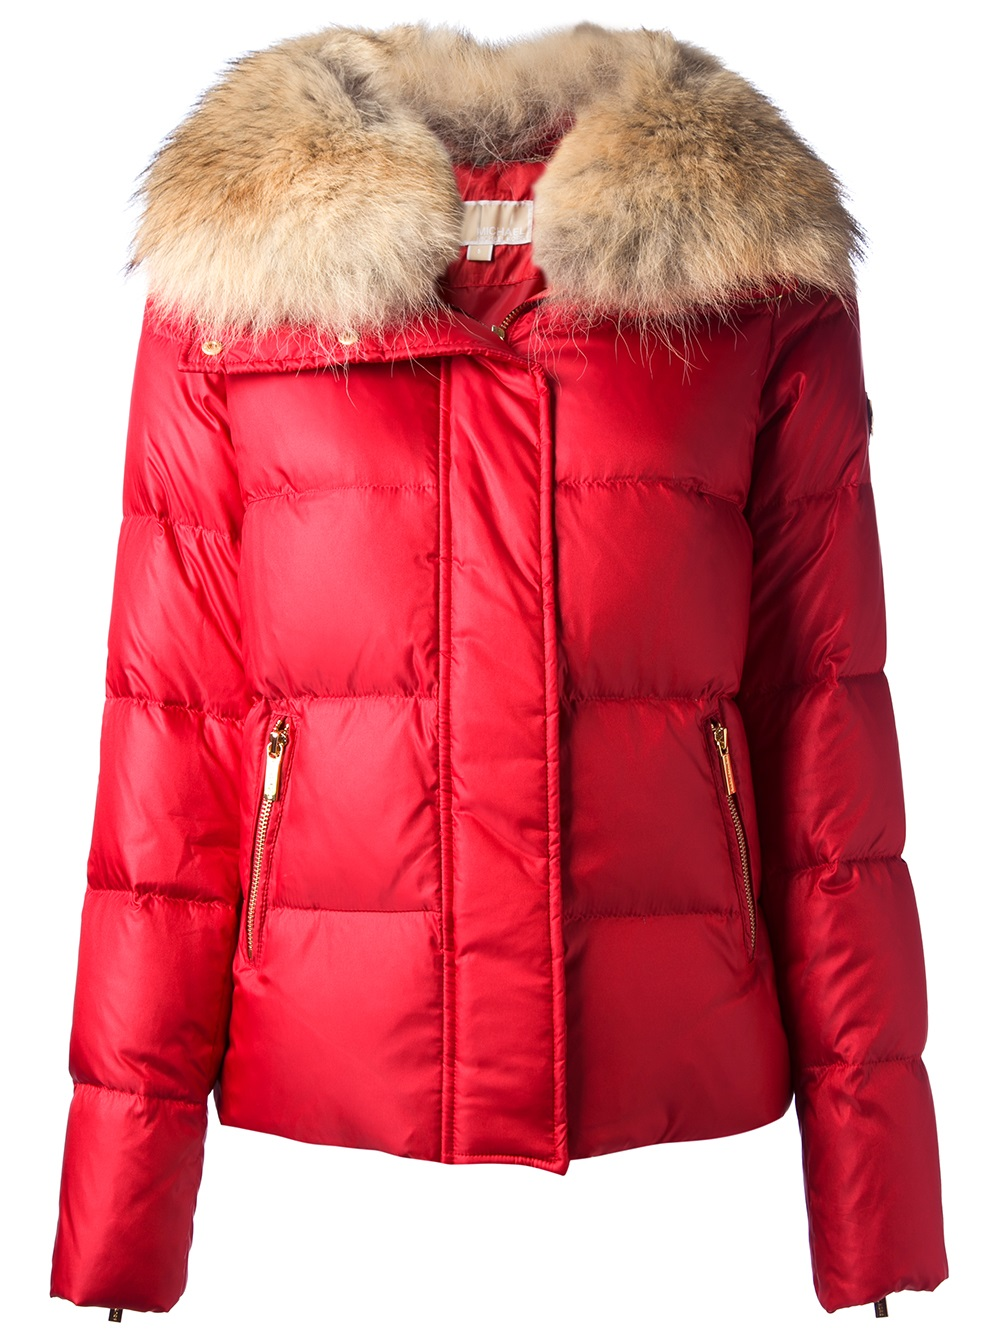 Michael michael kors Fur Collar Padded Jacket in Red   Lyst